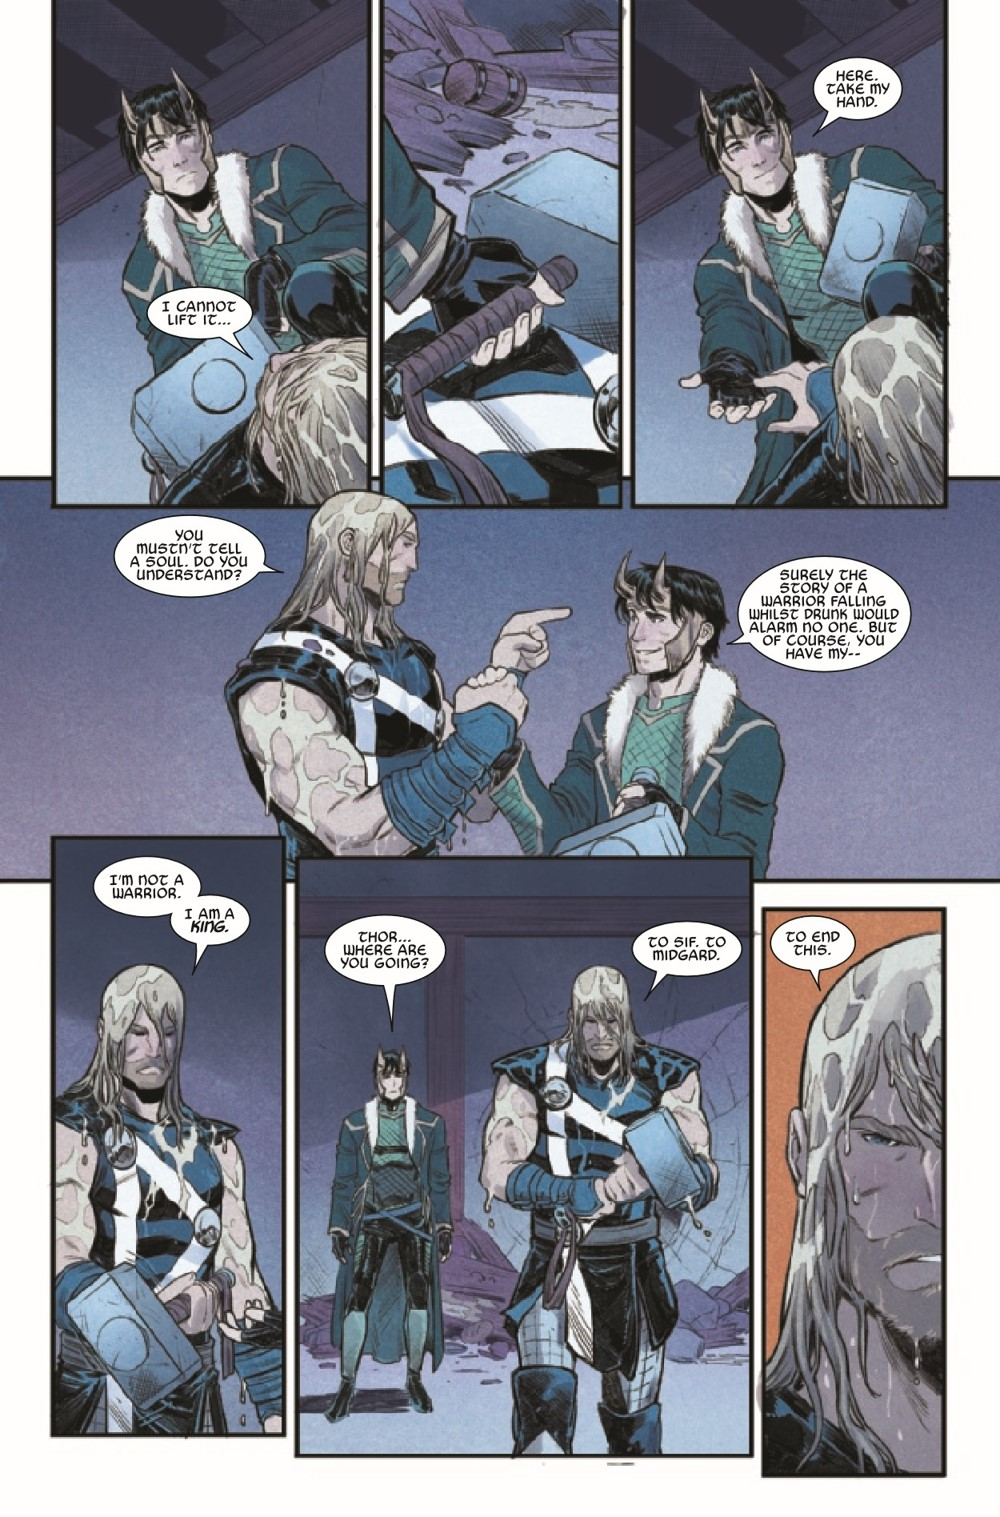 THOR2020015_Preview-5 ComicList Previews: THOR #15